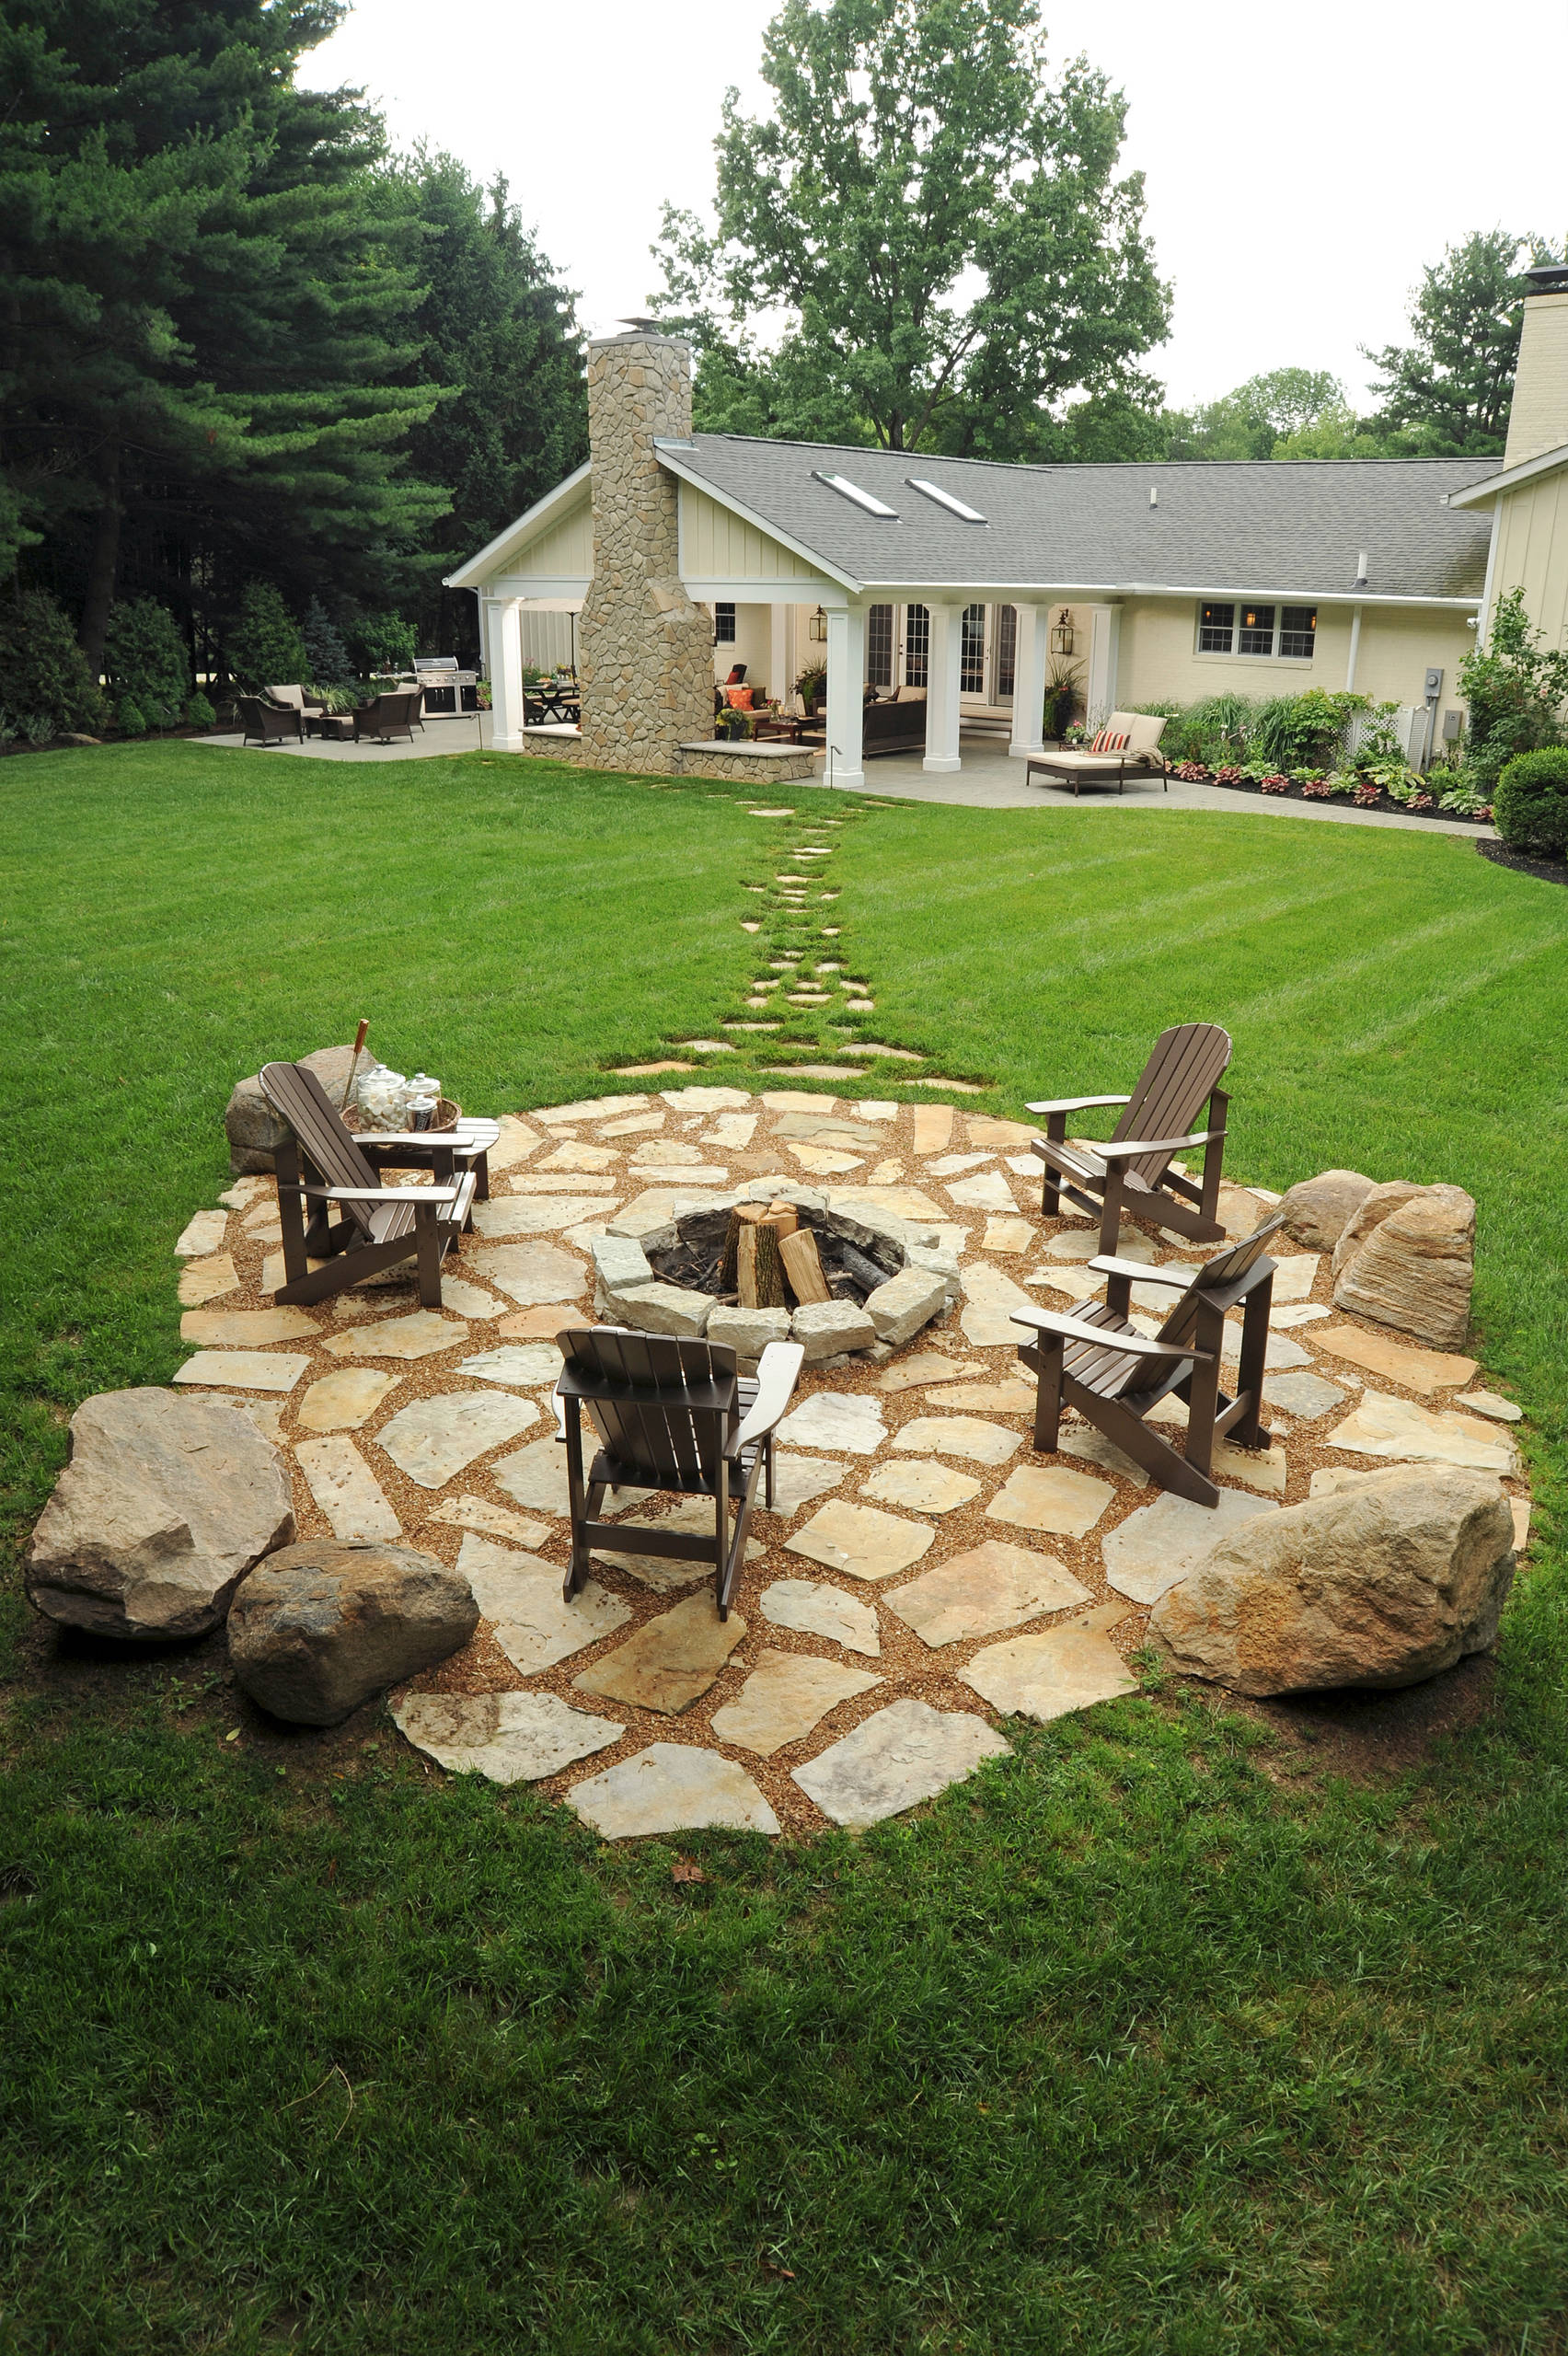 75 Beautiful Patio Pictures Ideas March 2021 Houzz